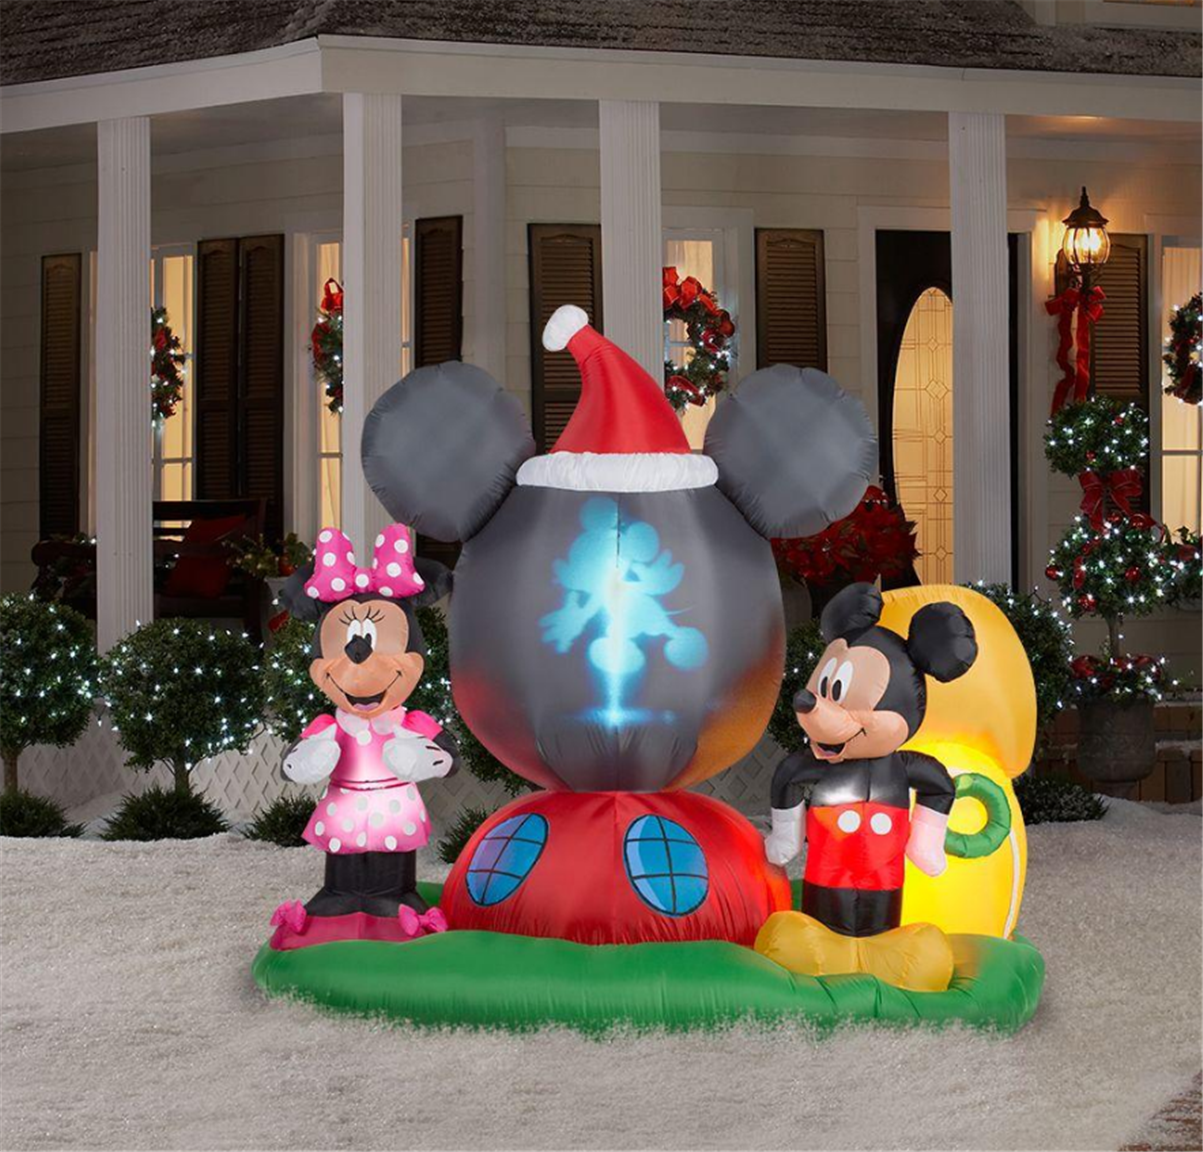 Home Depot – 6.5 ft. H Panoramic Projection Inflatable Mickey Mouse's Clubhouse Scene Only $118.30, Reg $169.00 + Free Shipping!